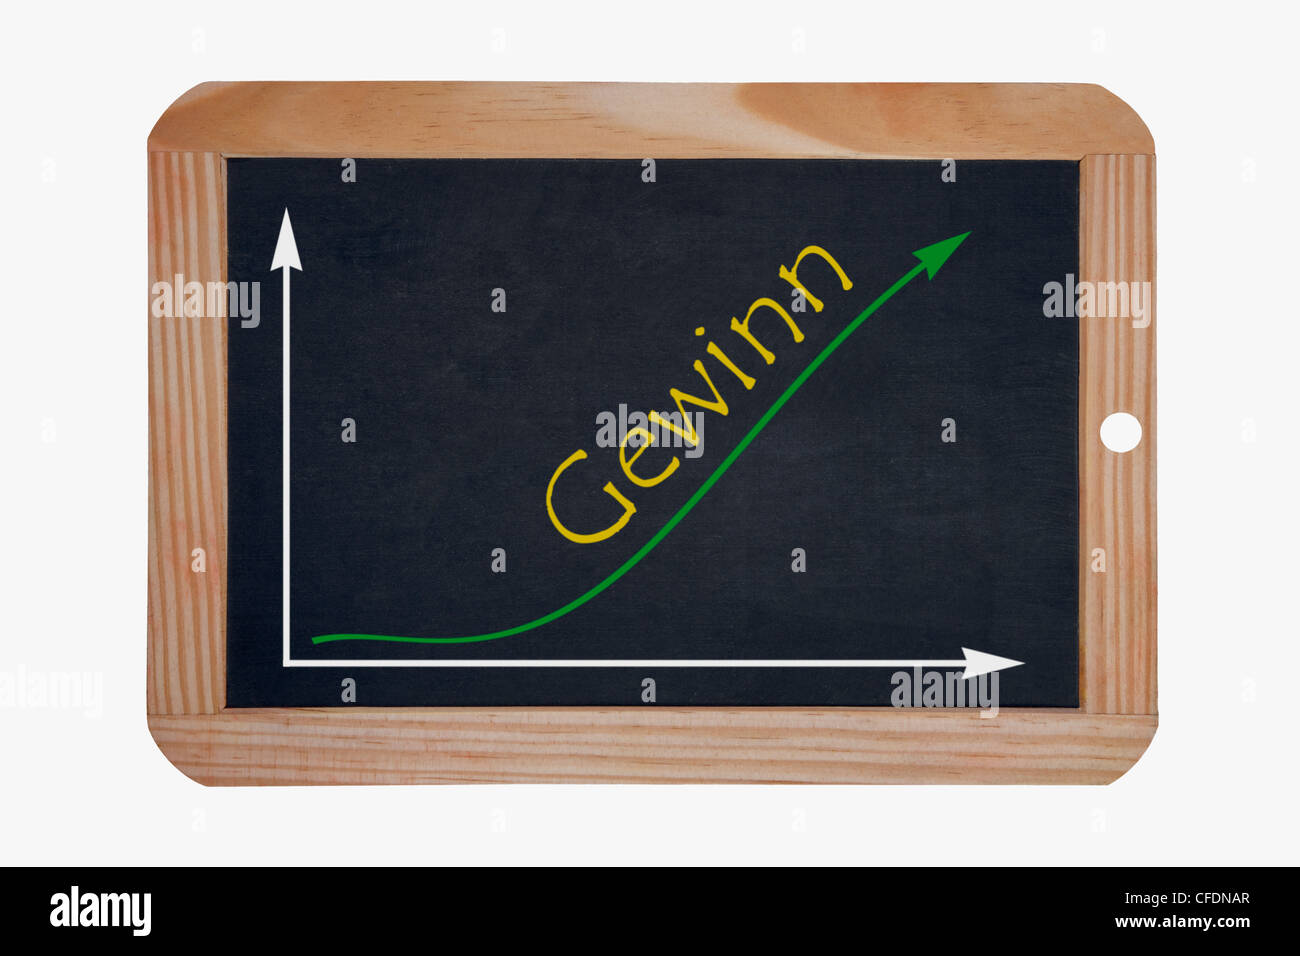 Detail photo of a chalkboard, a chart with an increasing curve on this, beside the word gain is written in German - Stock Image